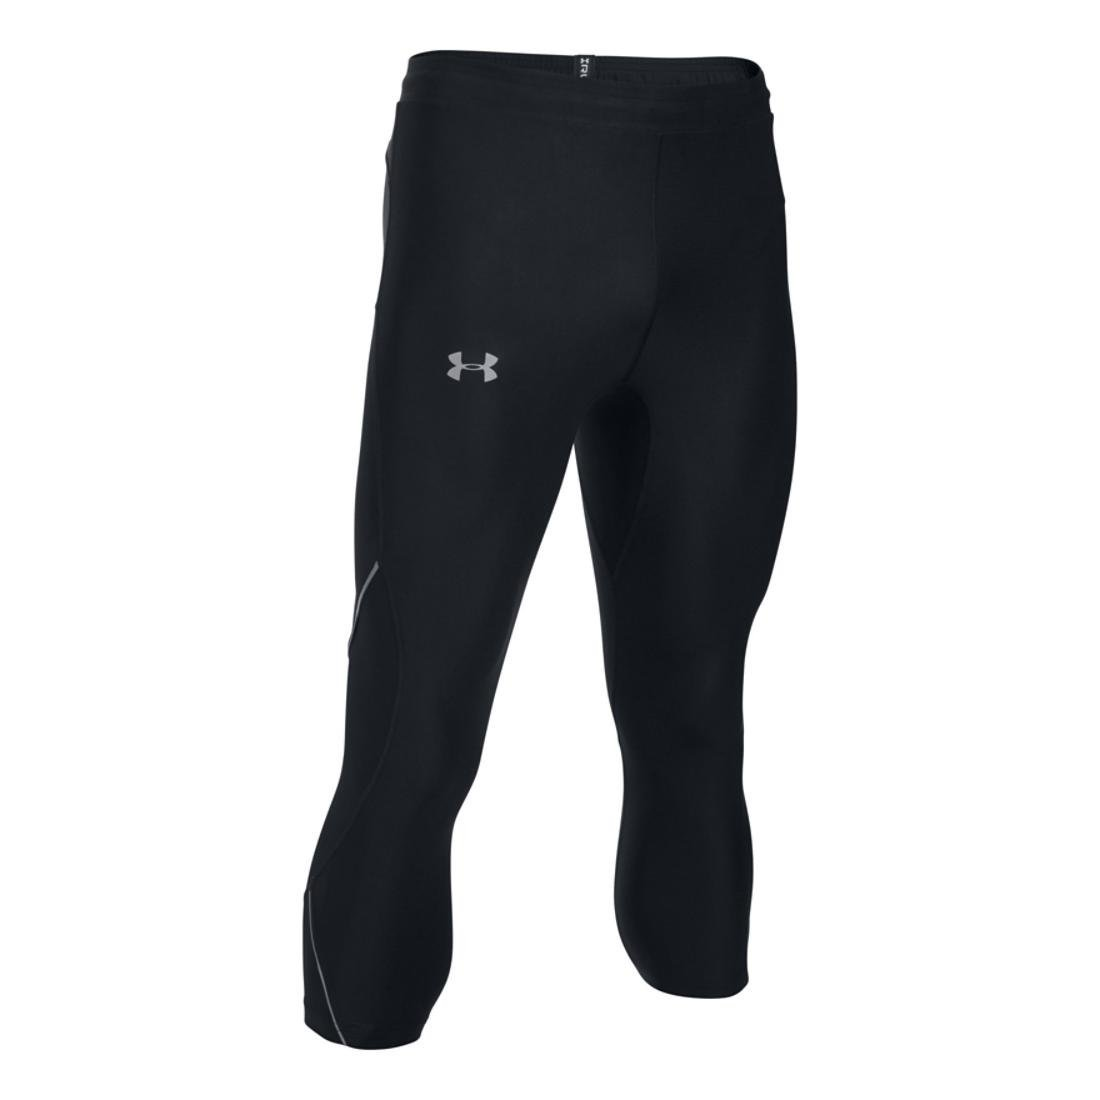 Under Armour Men's Run True ¾ Leggings Under Armour Apparel 1290260